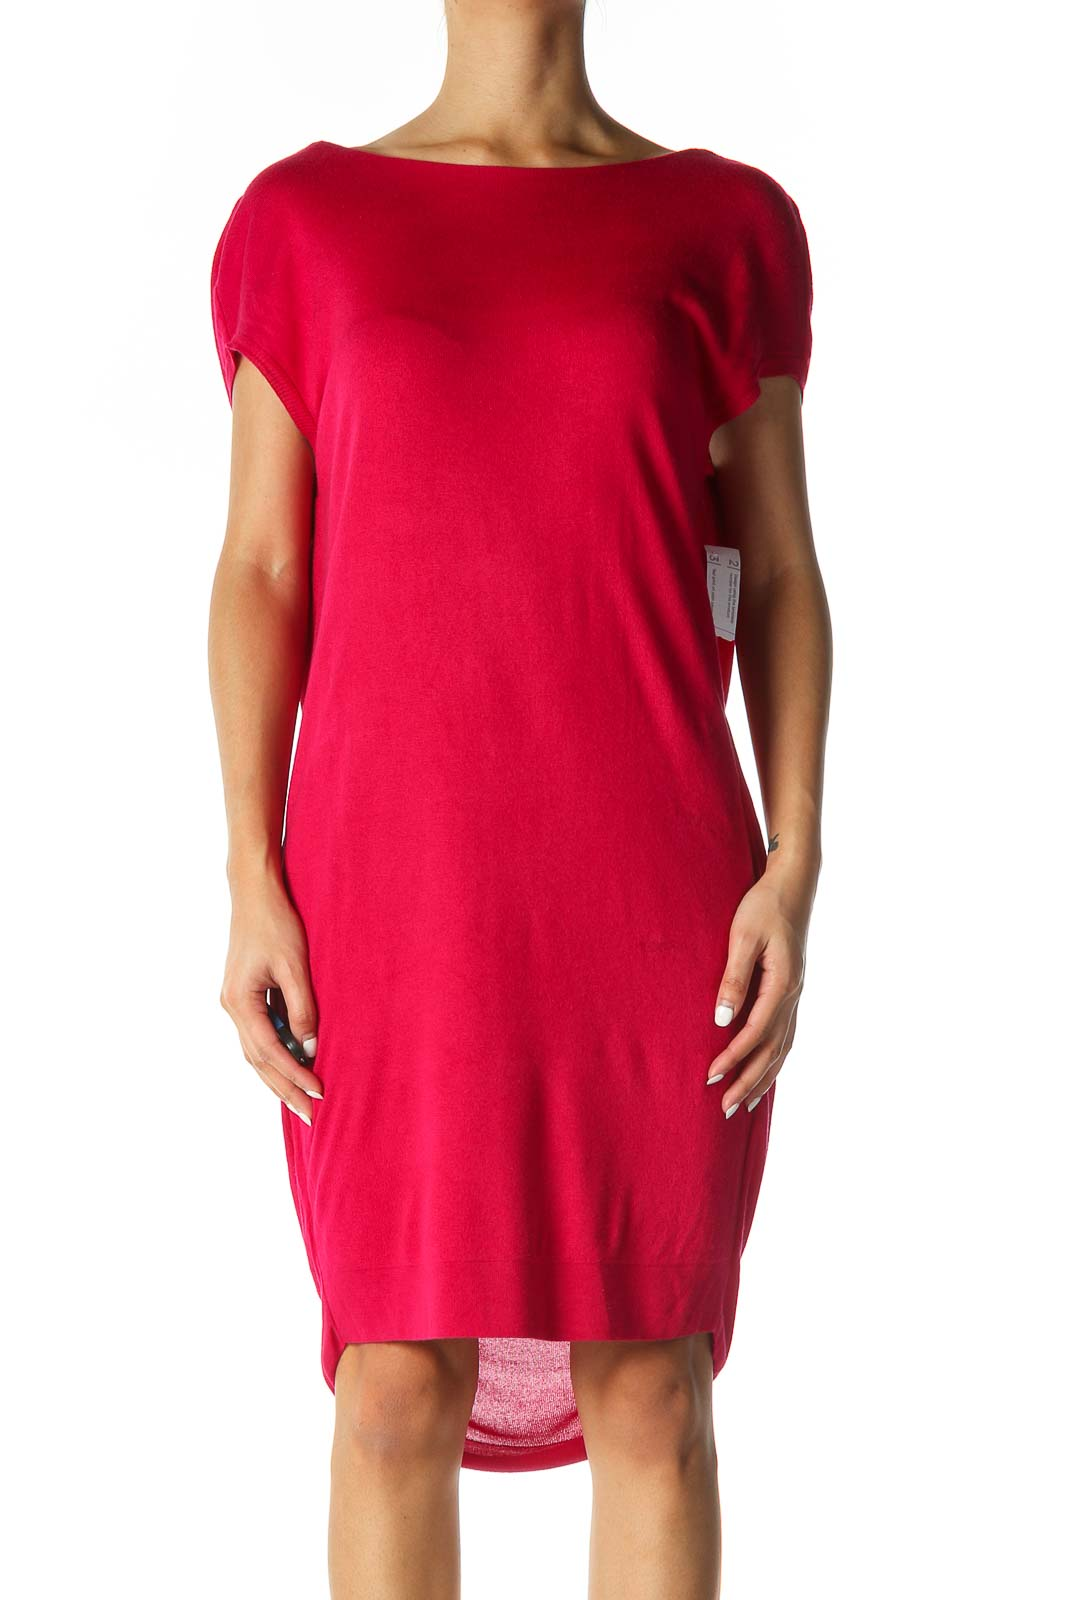 Pink Solid Casual Sheath Dress Front